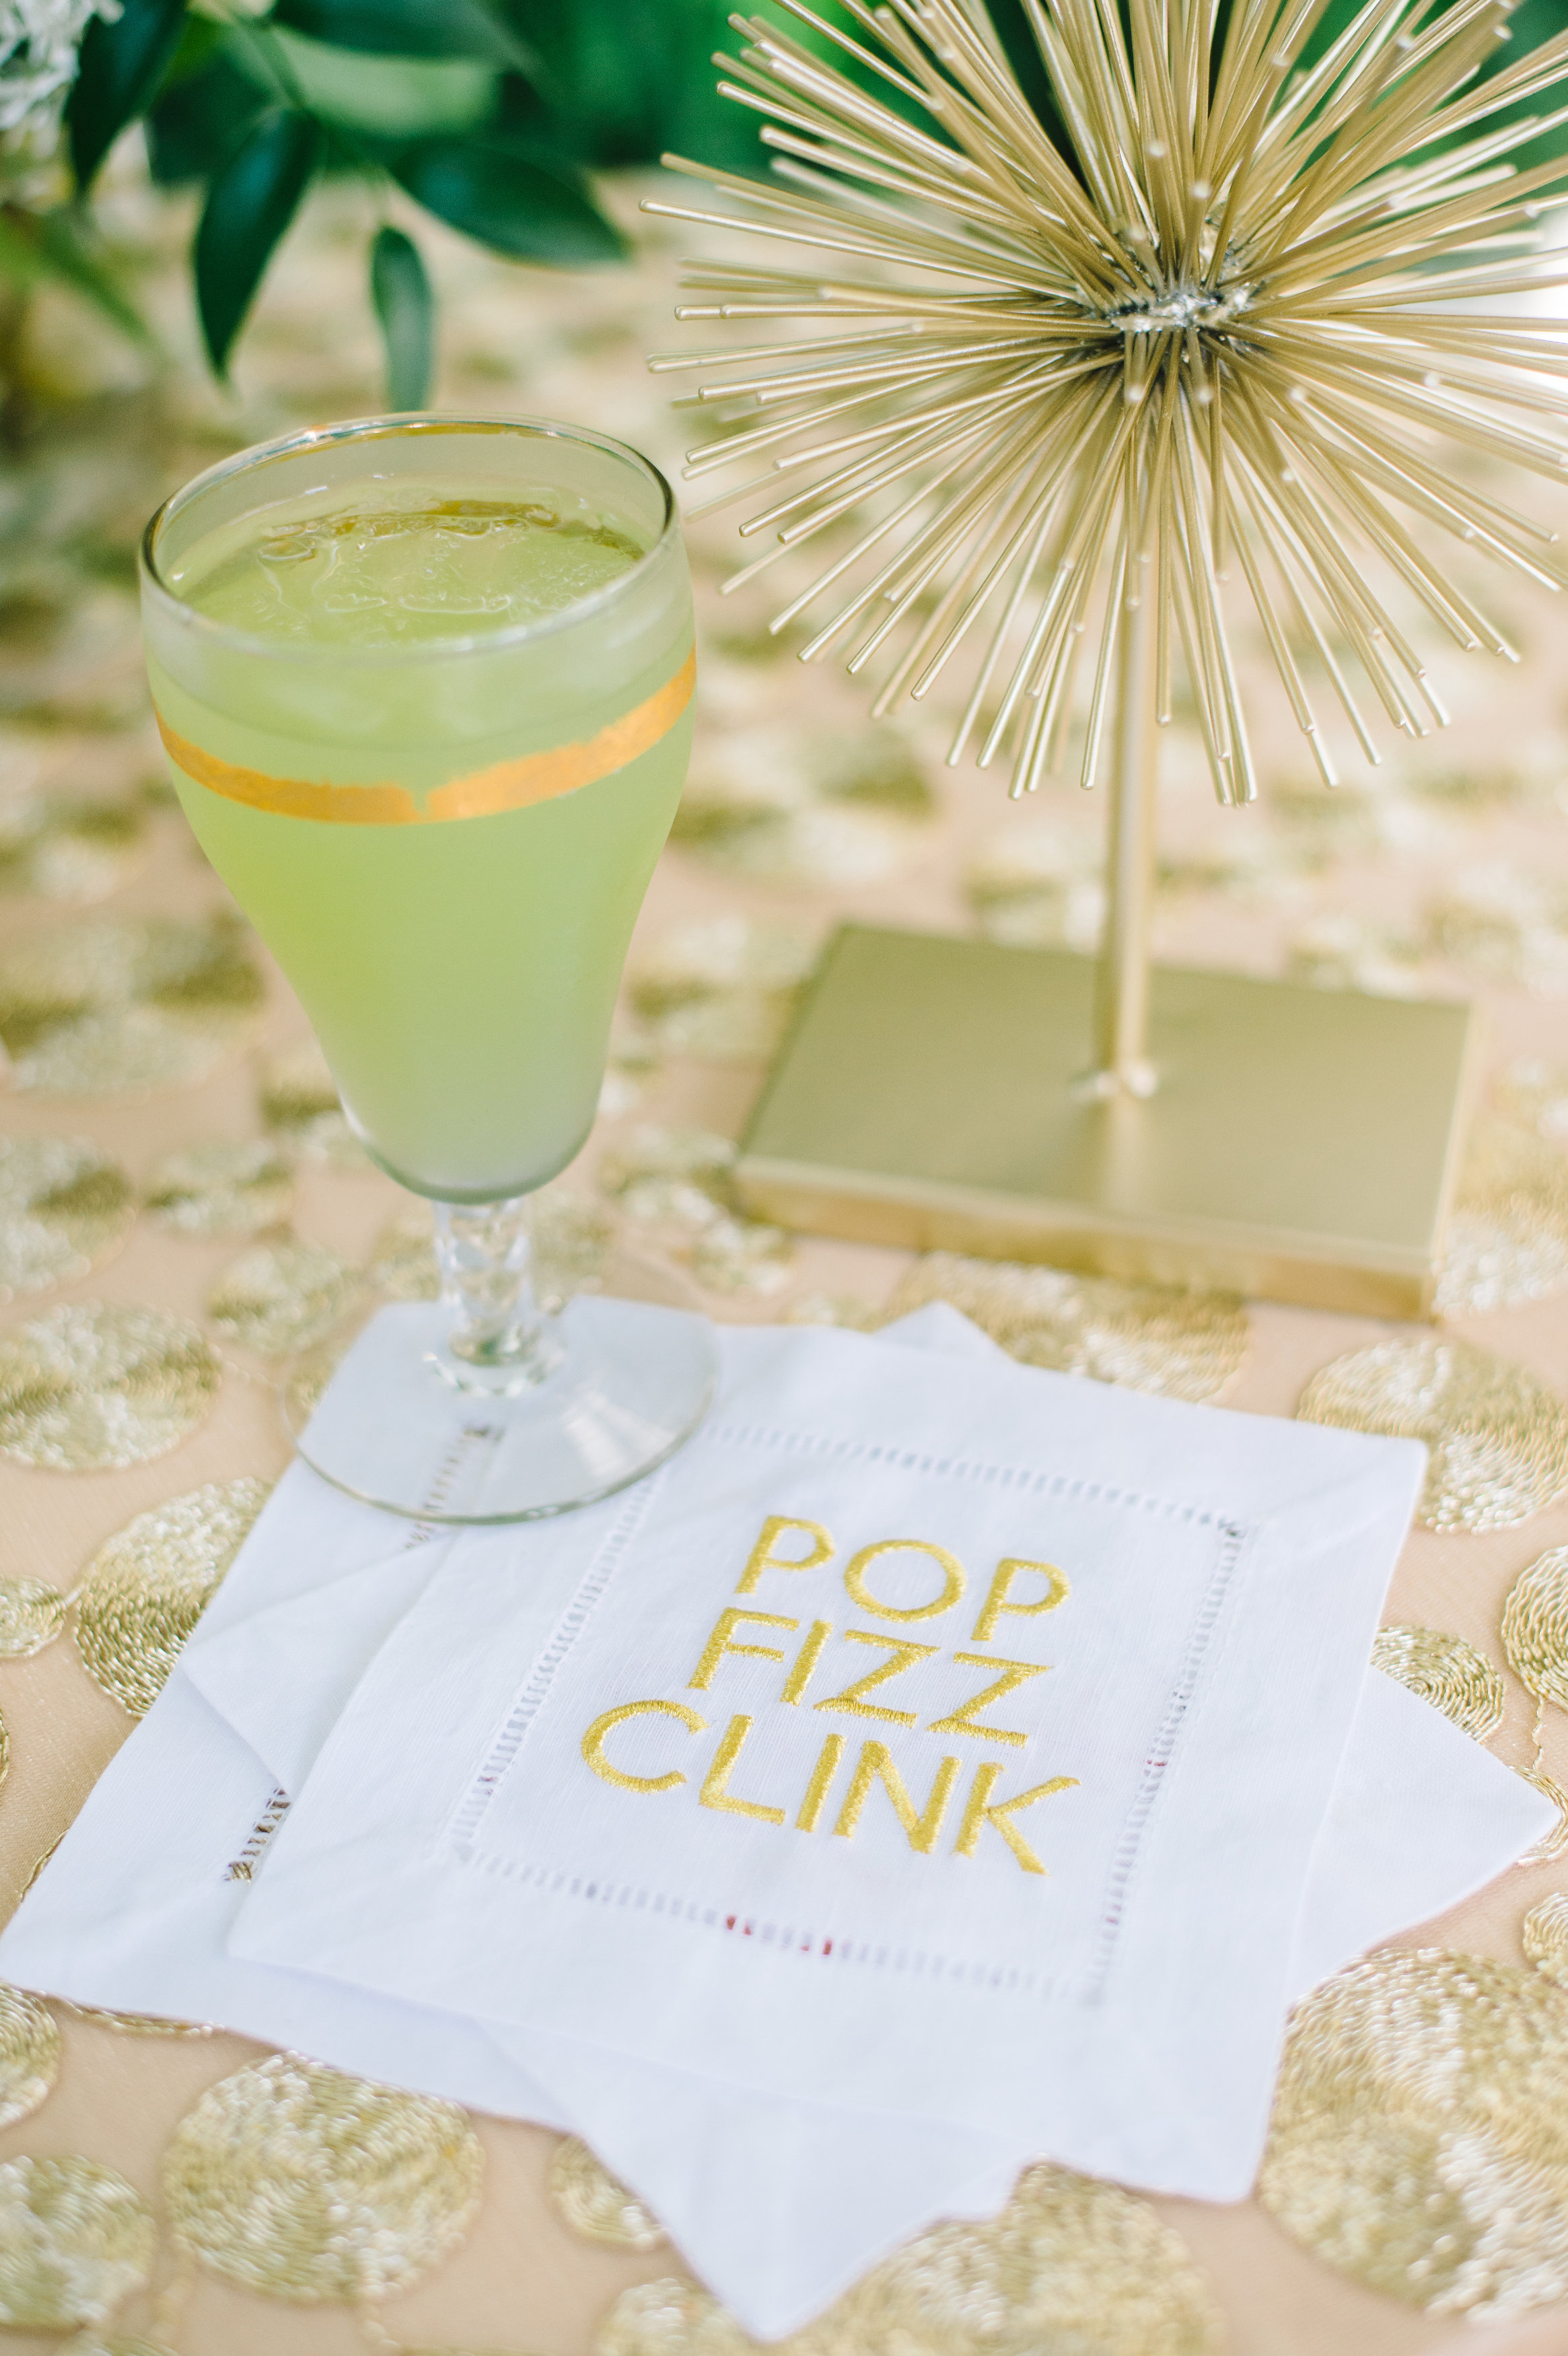 pop-fizz-clink-cocktail-napkins-charleston-made-on-marlow-the-knot-market-mixer